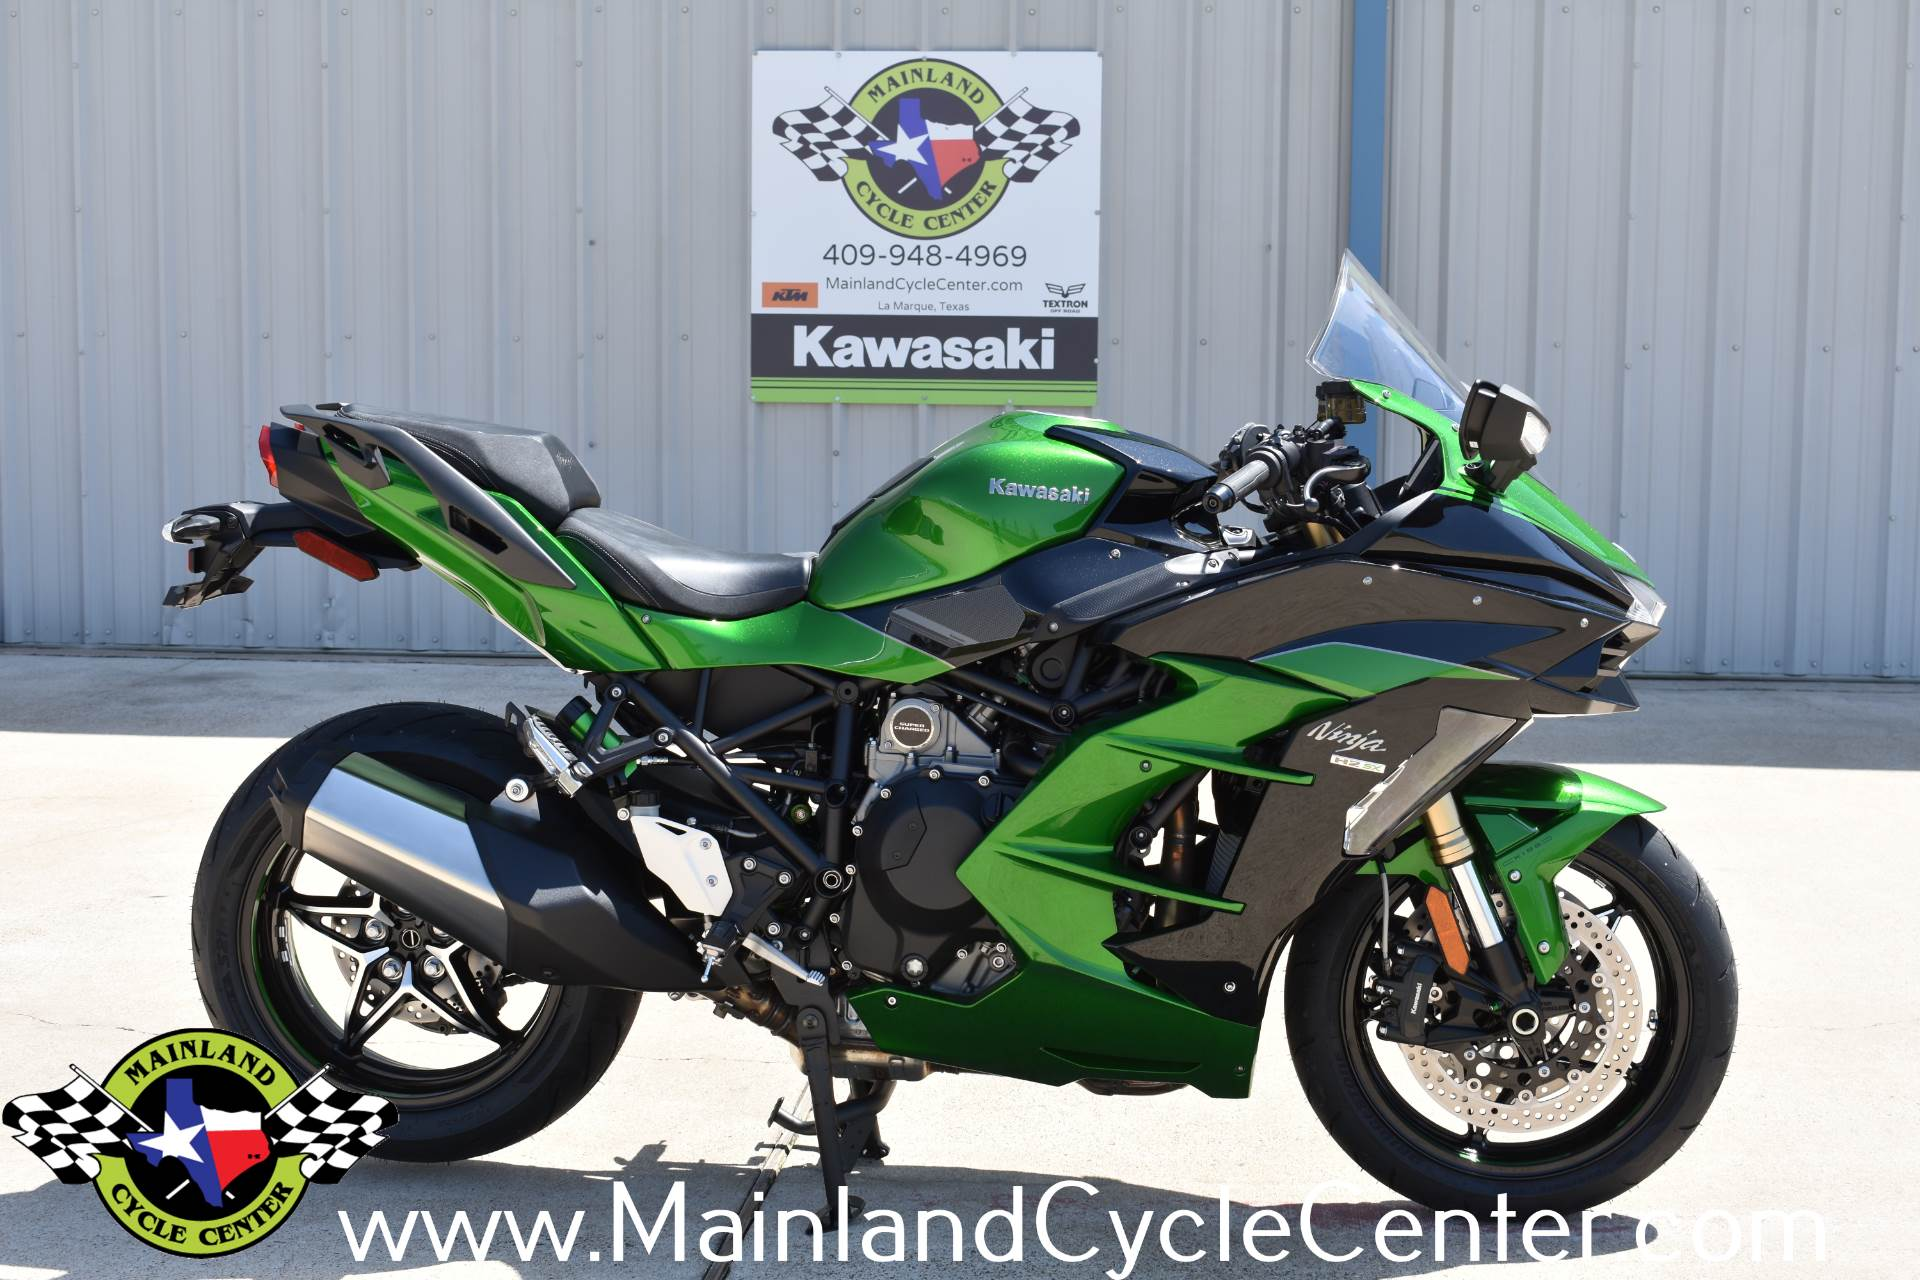 2018 Kawasaki Ninja H2 SX SE for sale 559